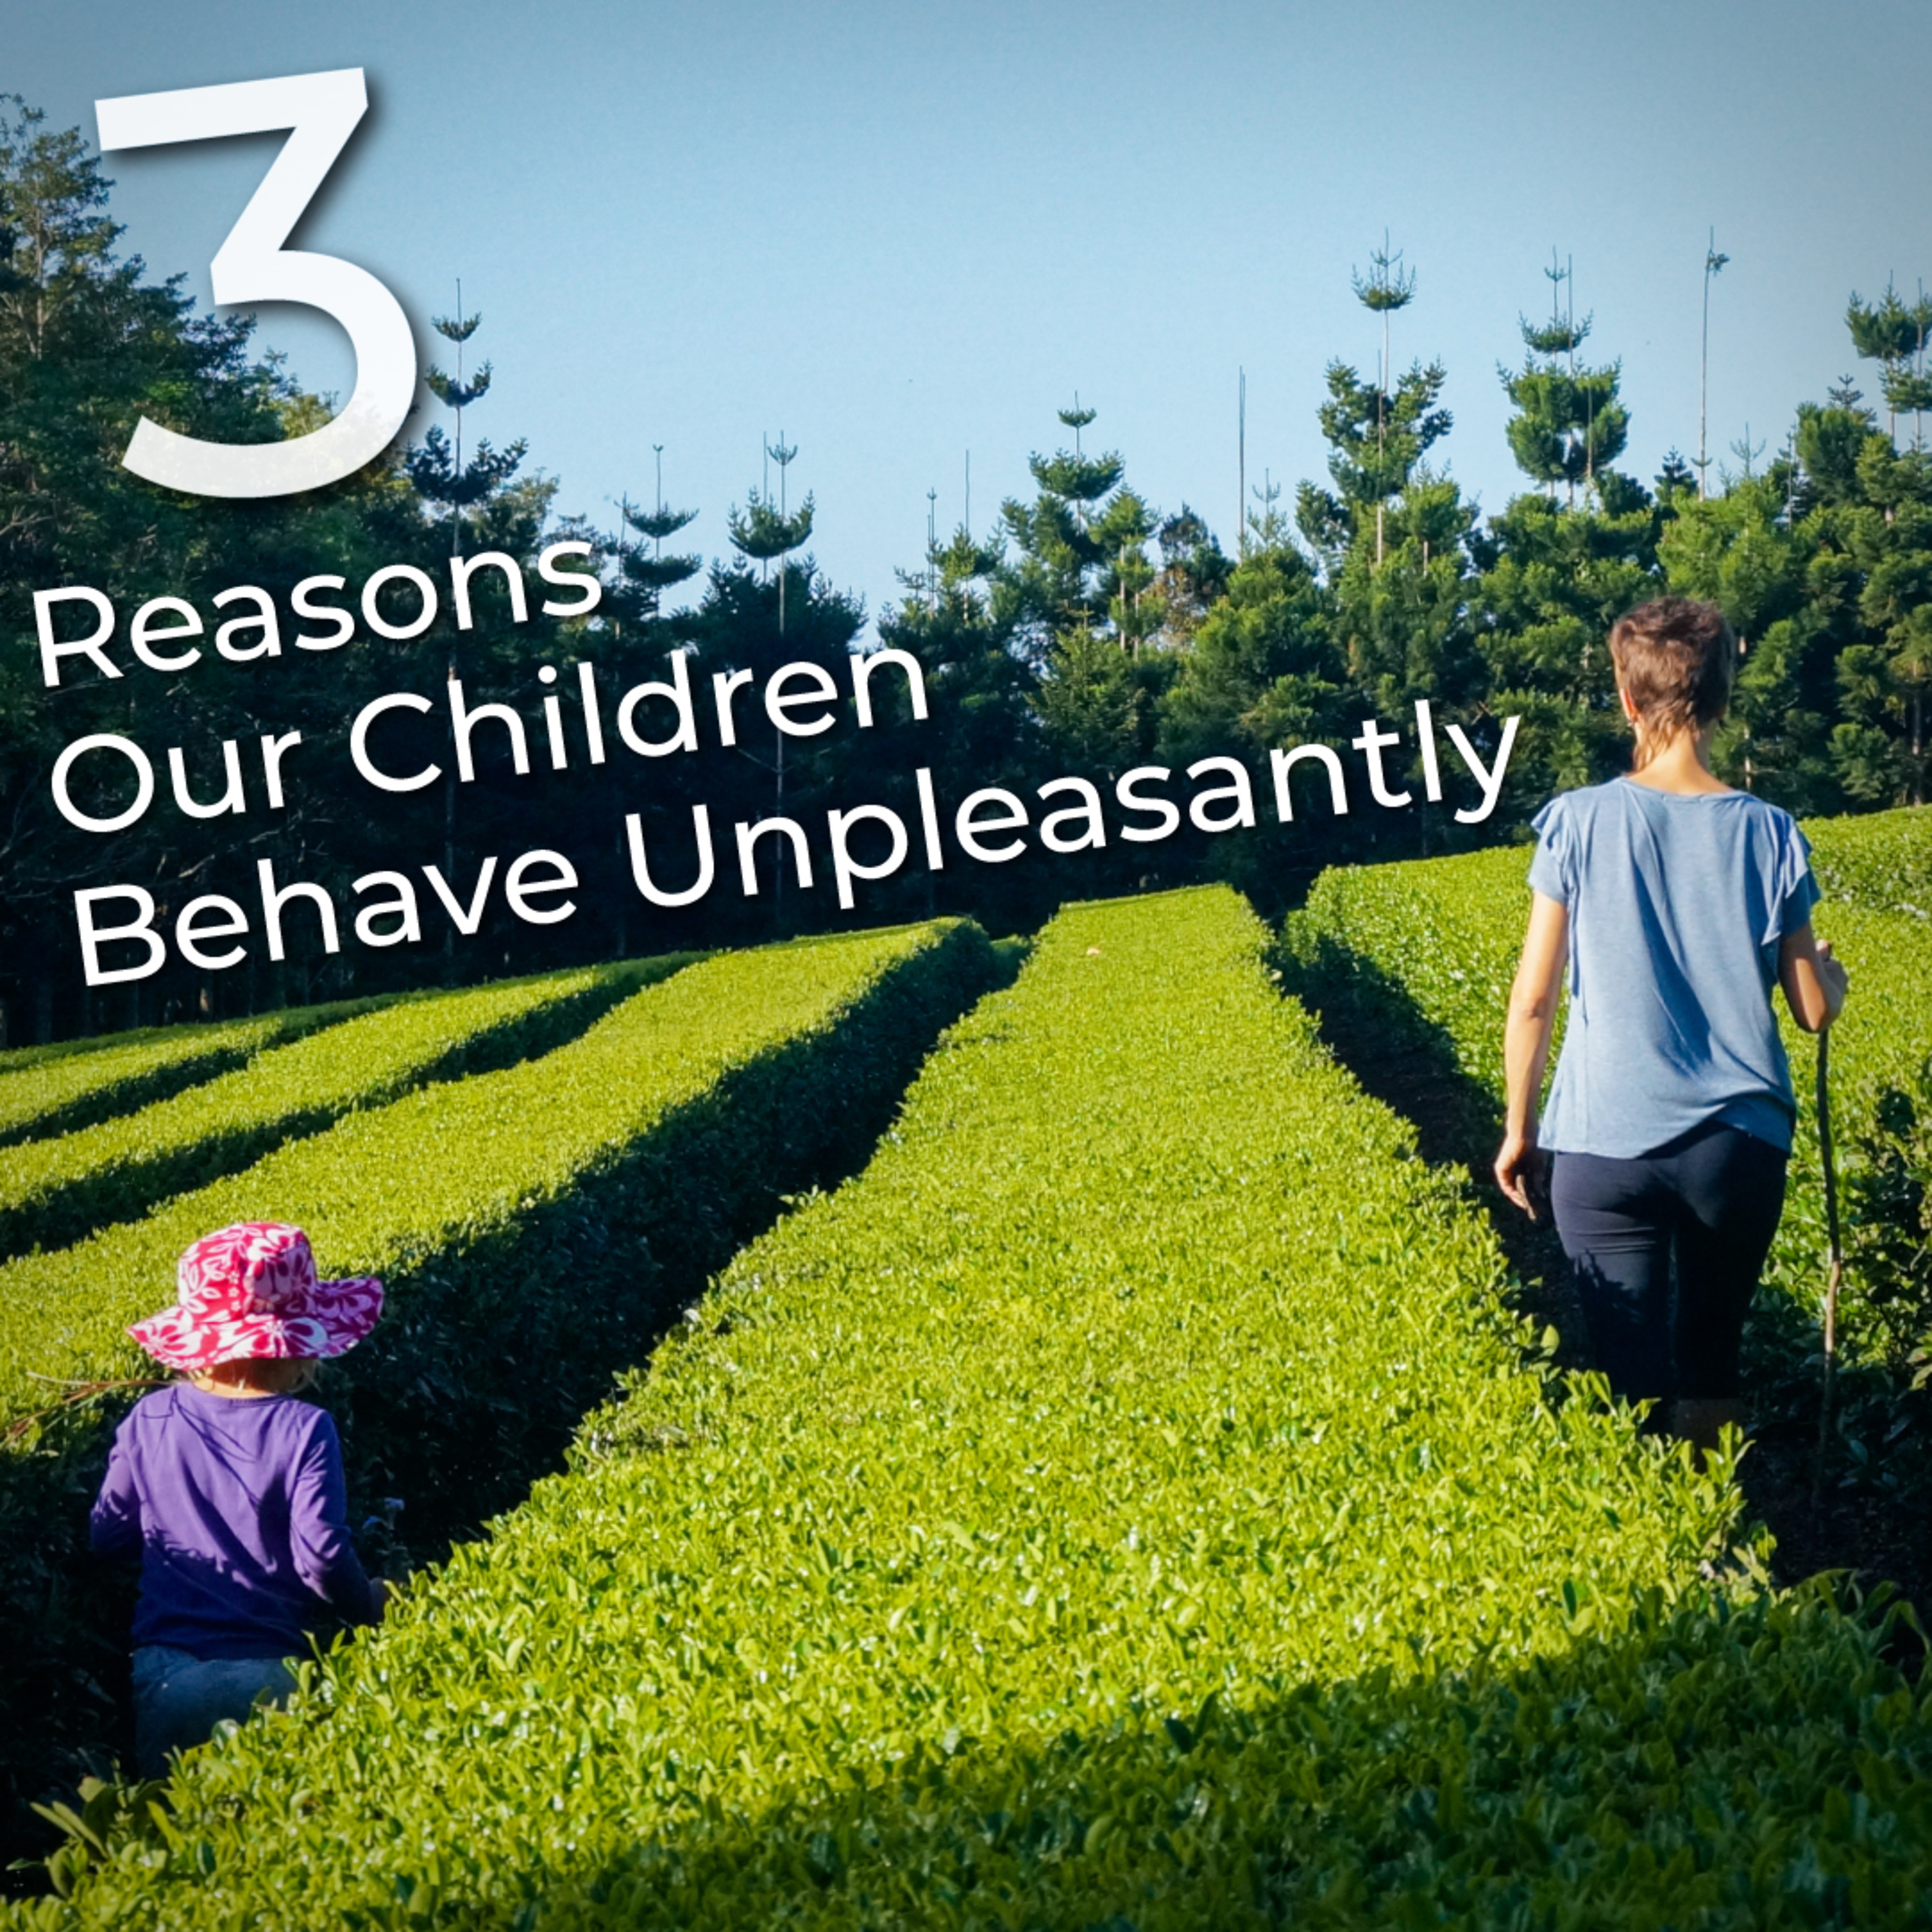 Three reasons why our children BEHAVE UNPLEASANTLY